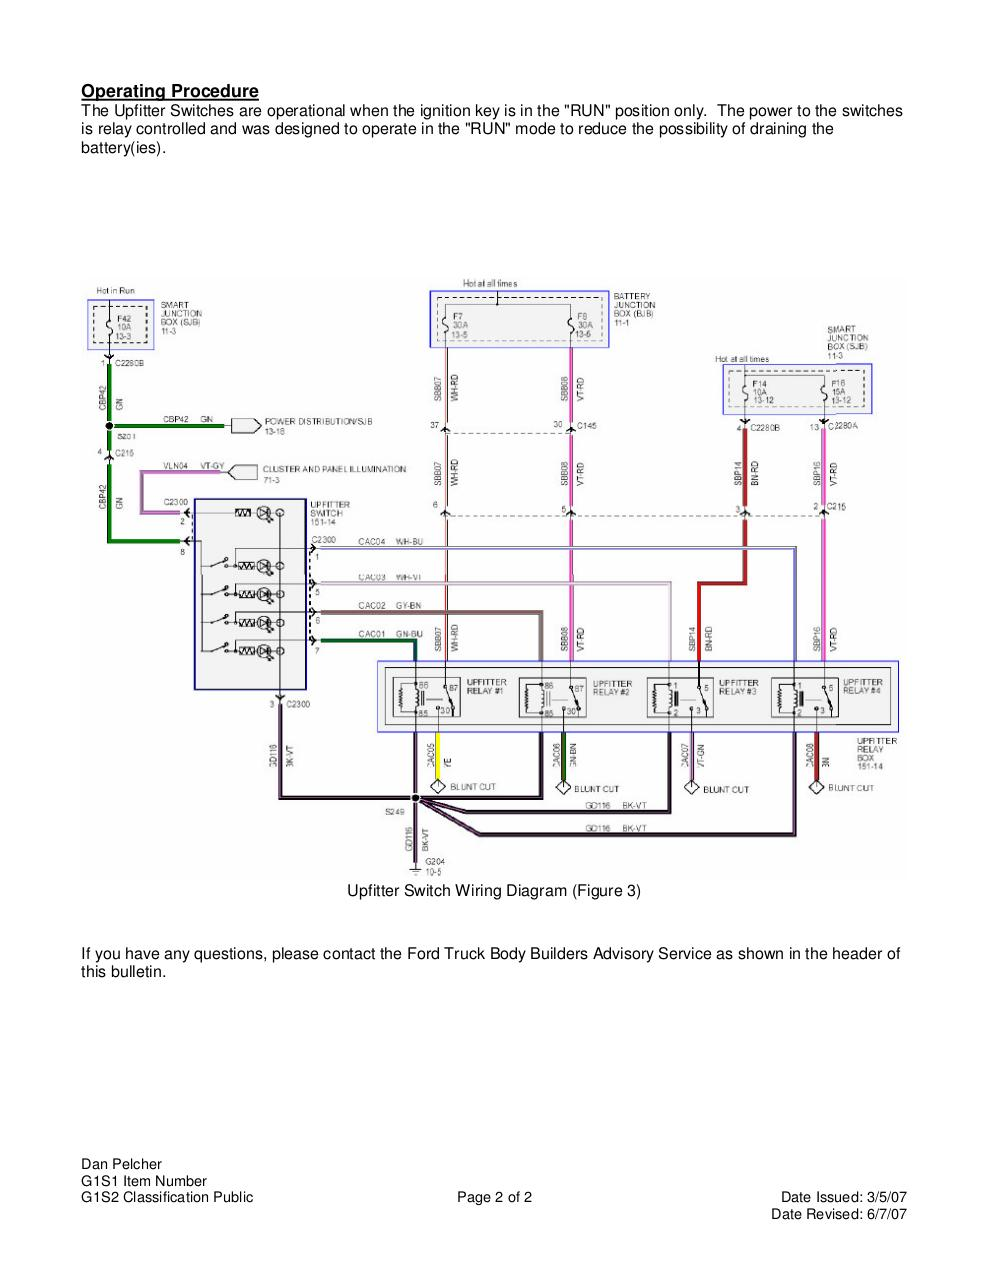 2015 Ford Upfitter Switches Wiring Diagram